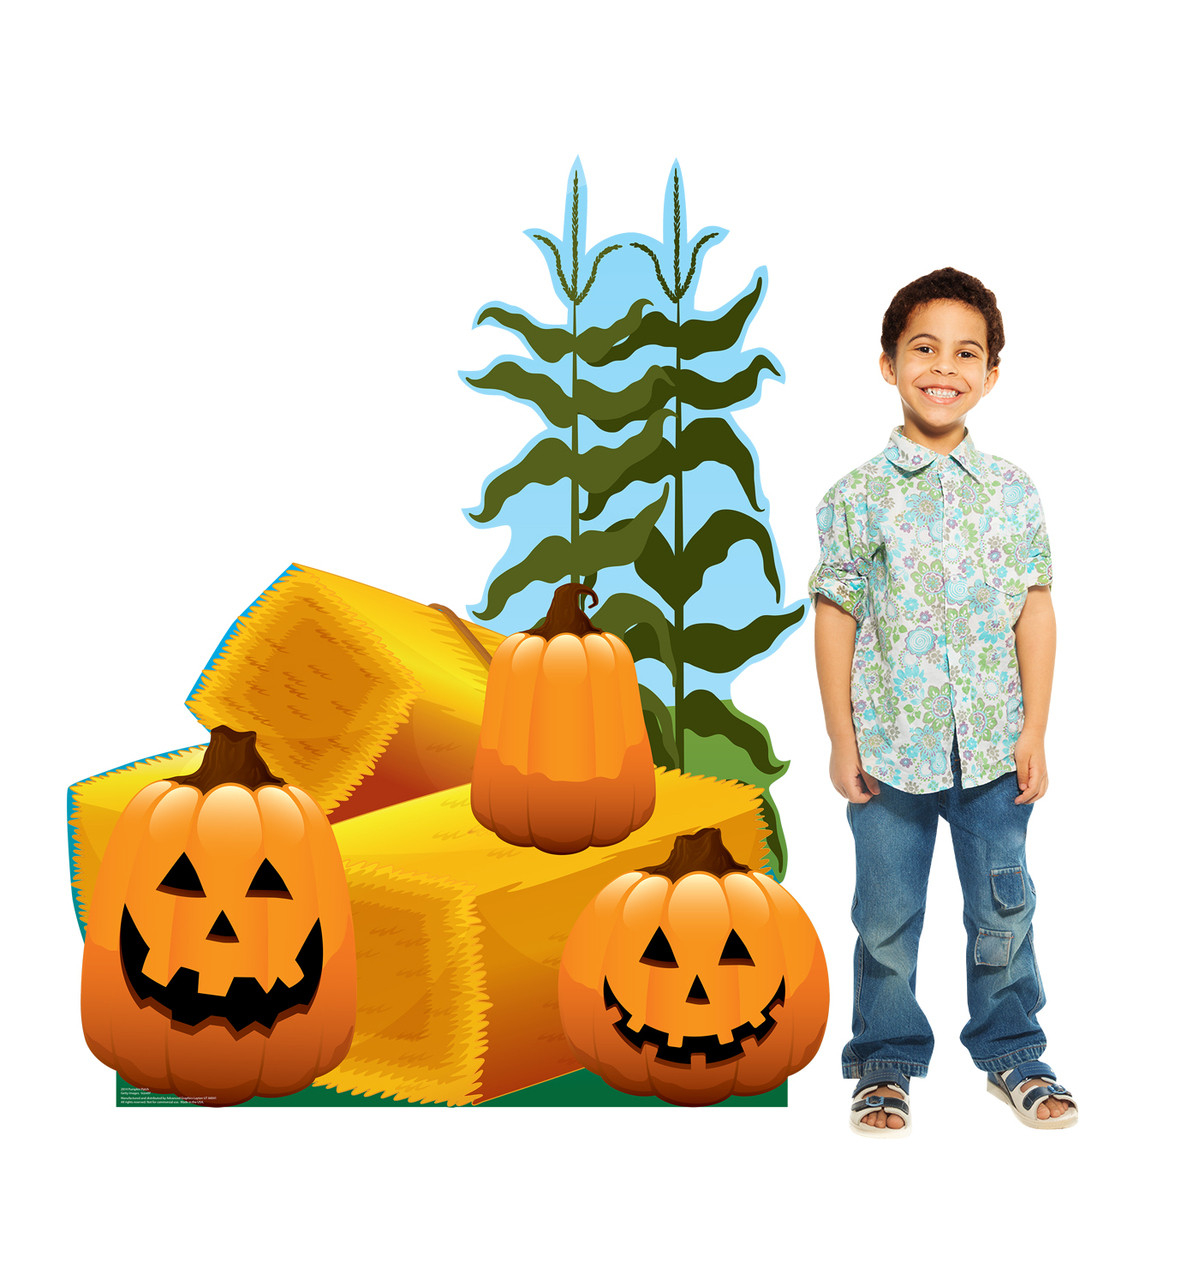 Life-size cardboard standee of Pumpkin Patch with model.